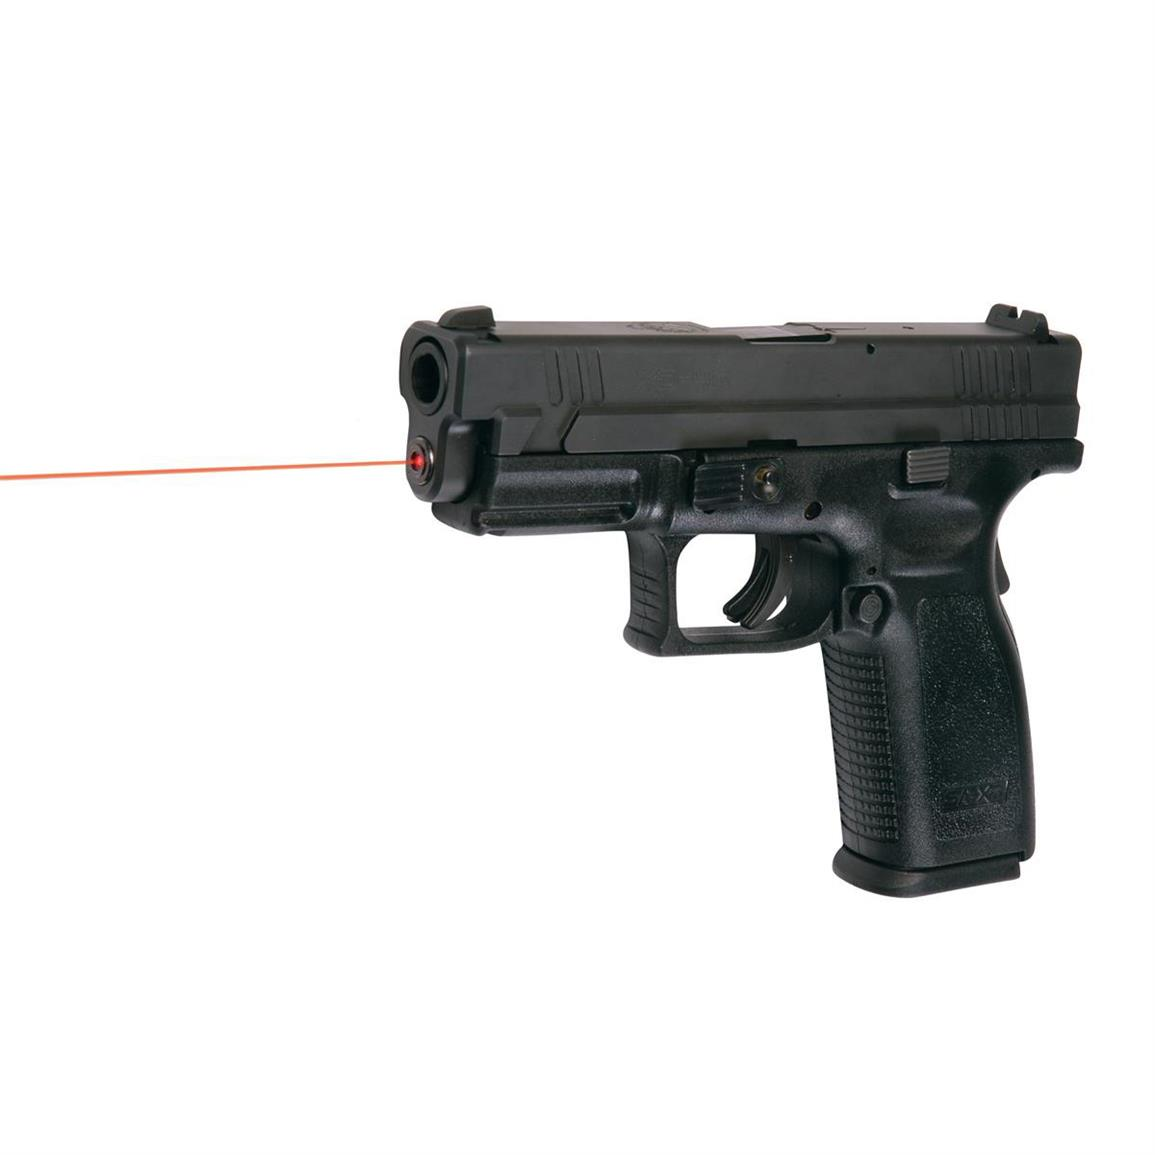 LaserMax LMS-XDMS Springfield XD Guide Rod Laser